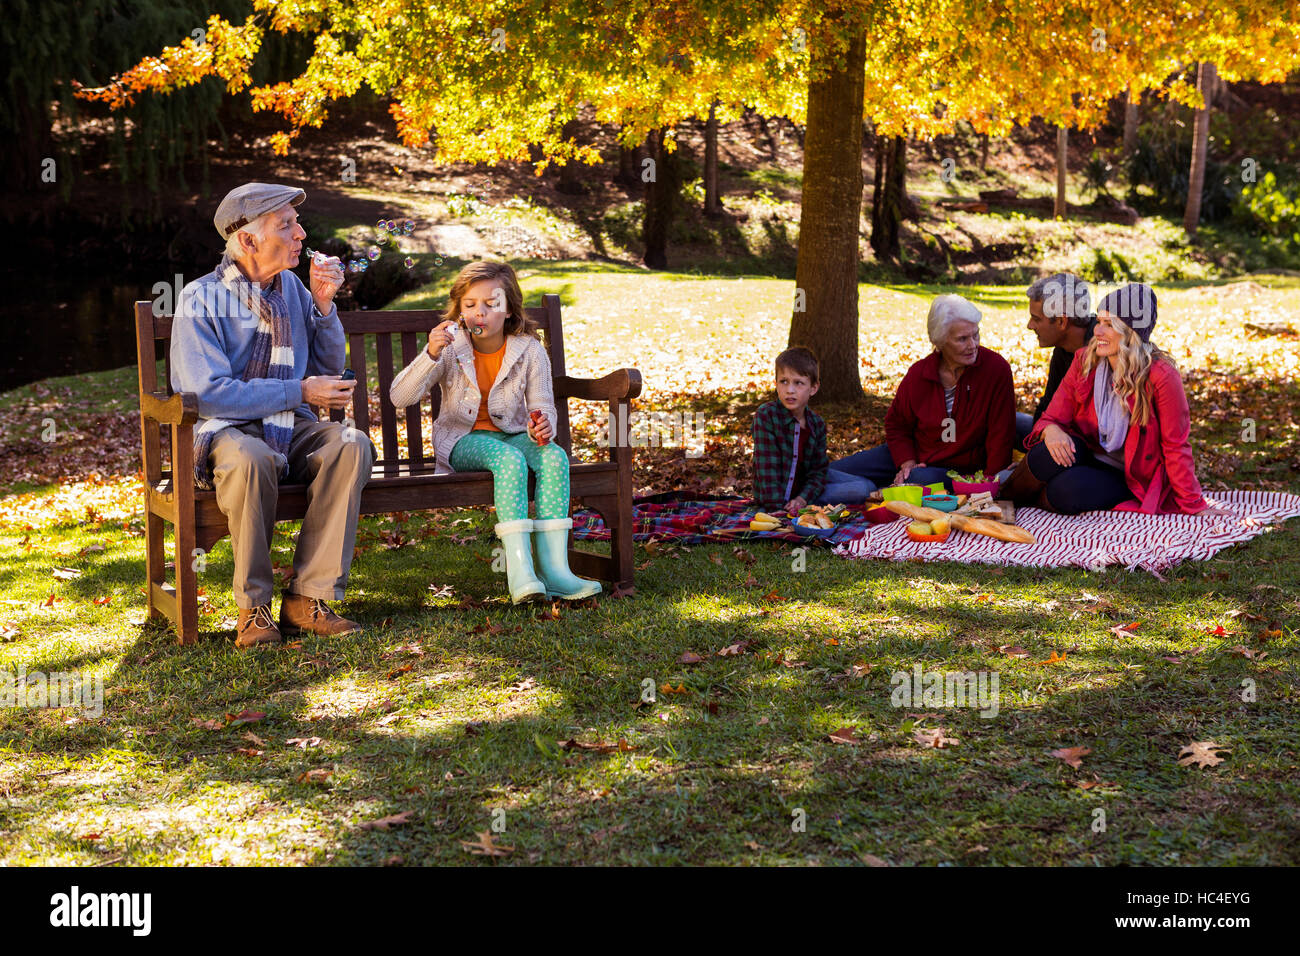 Family picnicking and the grandfather playing with his grand daughter - Stock Image